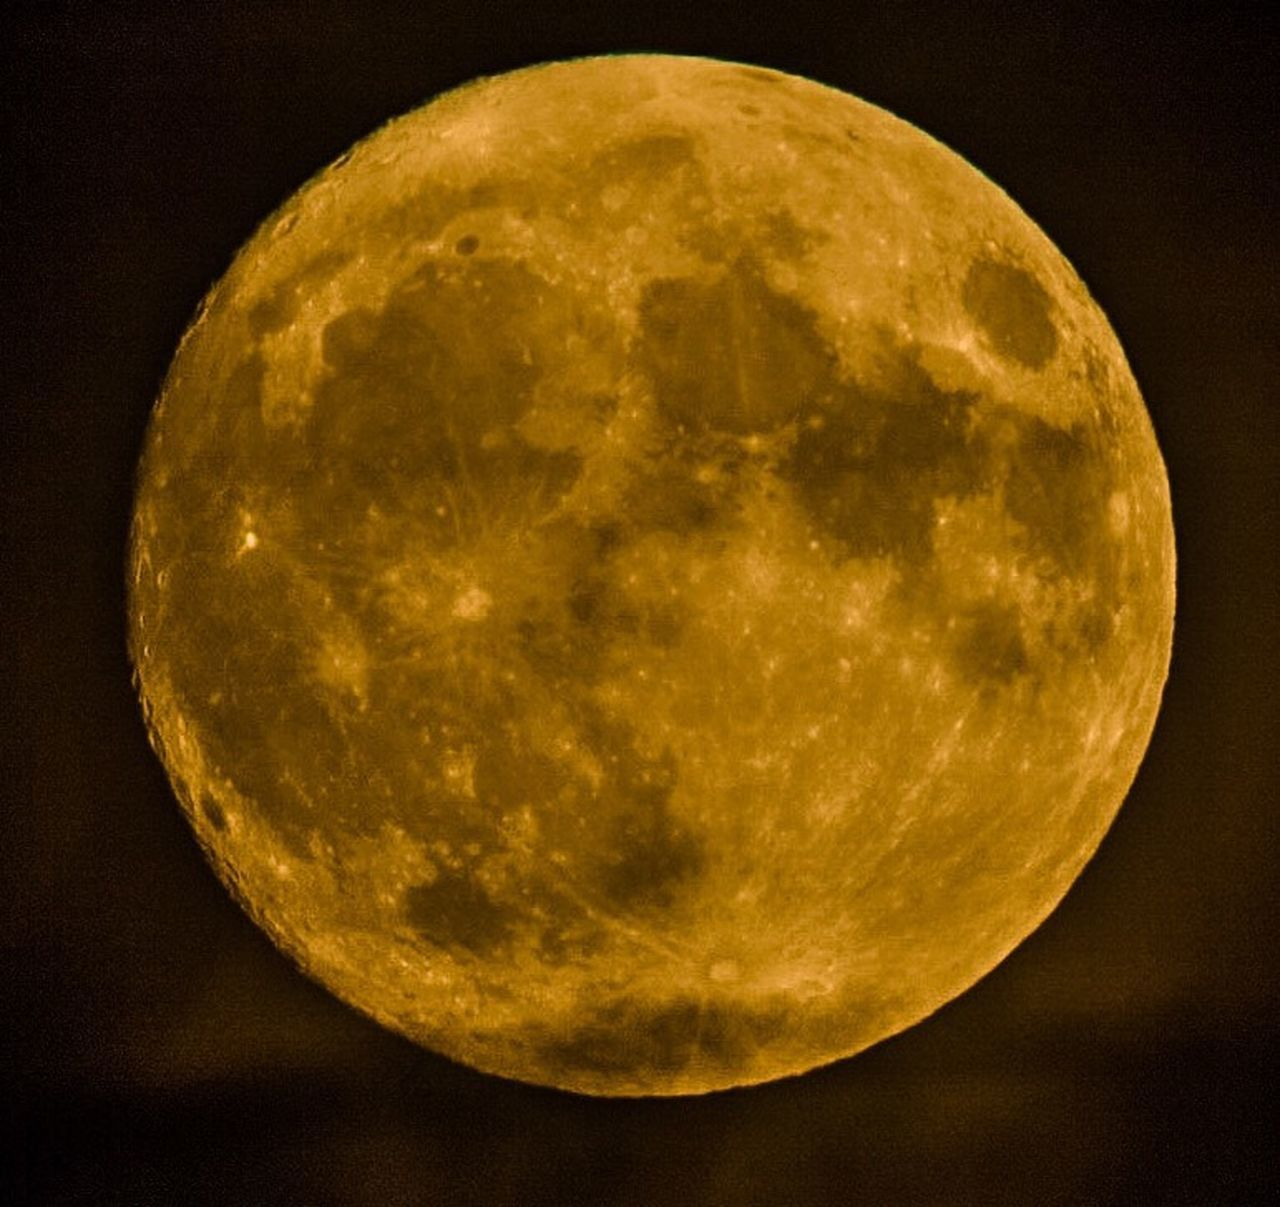 moon, night, astronomy, beauty in nature, nature, planetary moon, no people, moon surface, outdoors, scenics, tranquility, close-up, sky, space